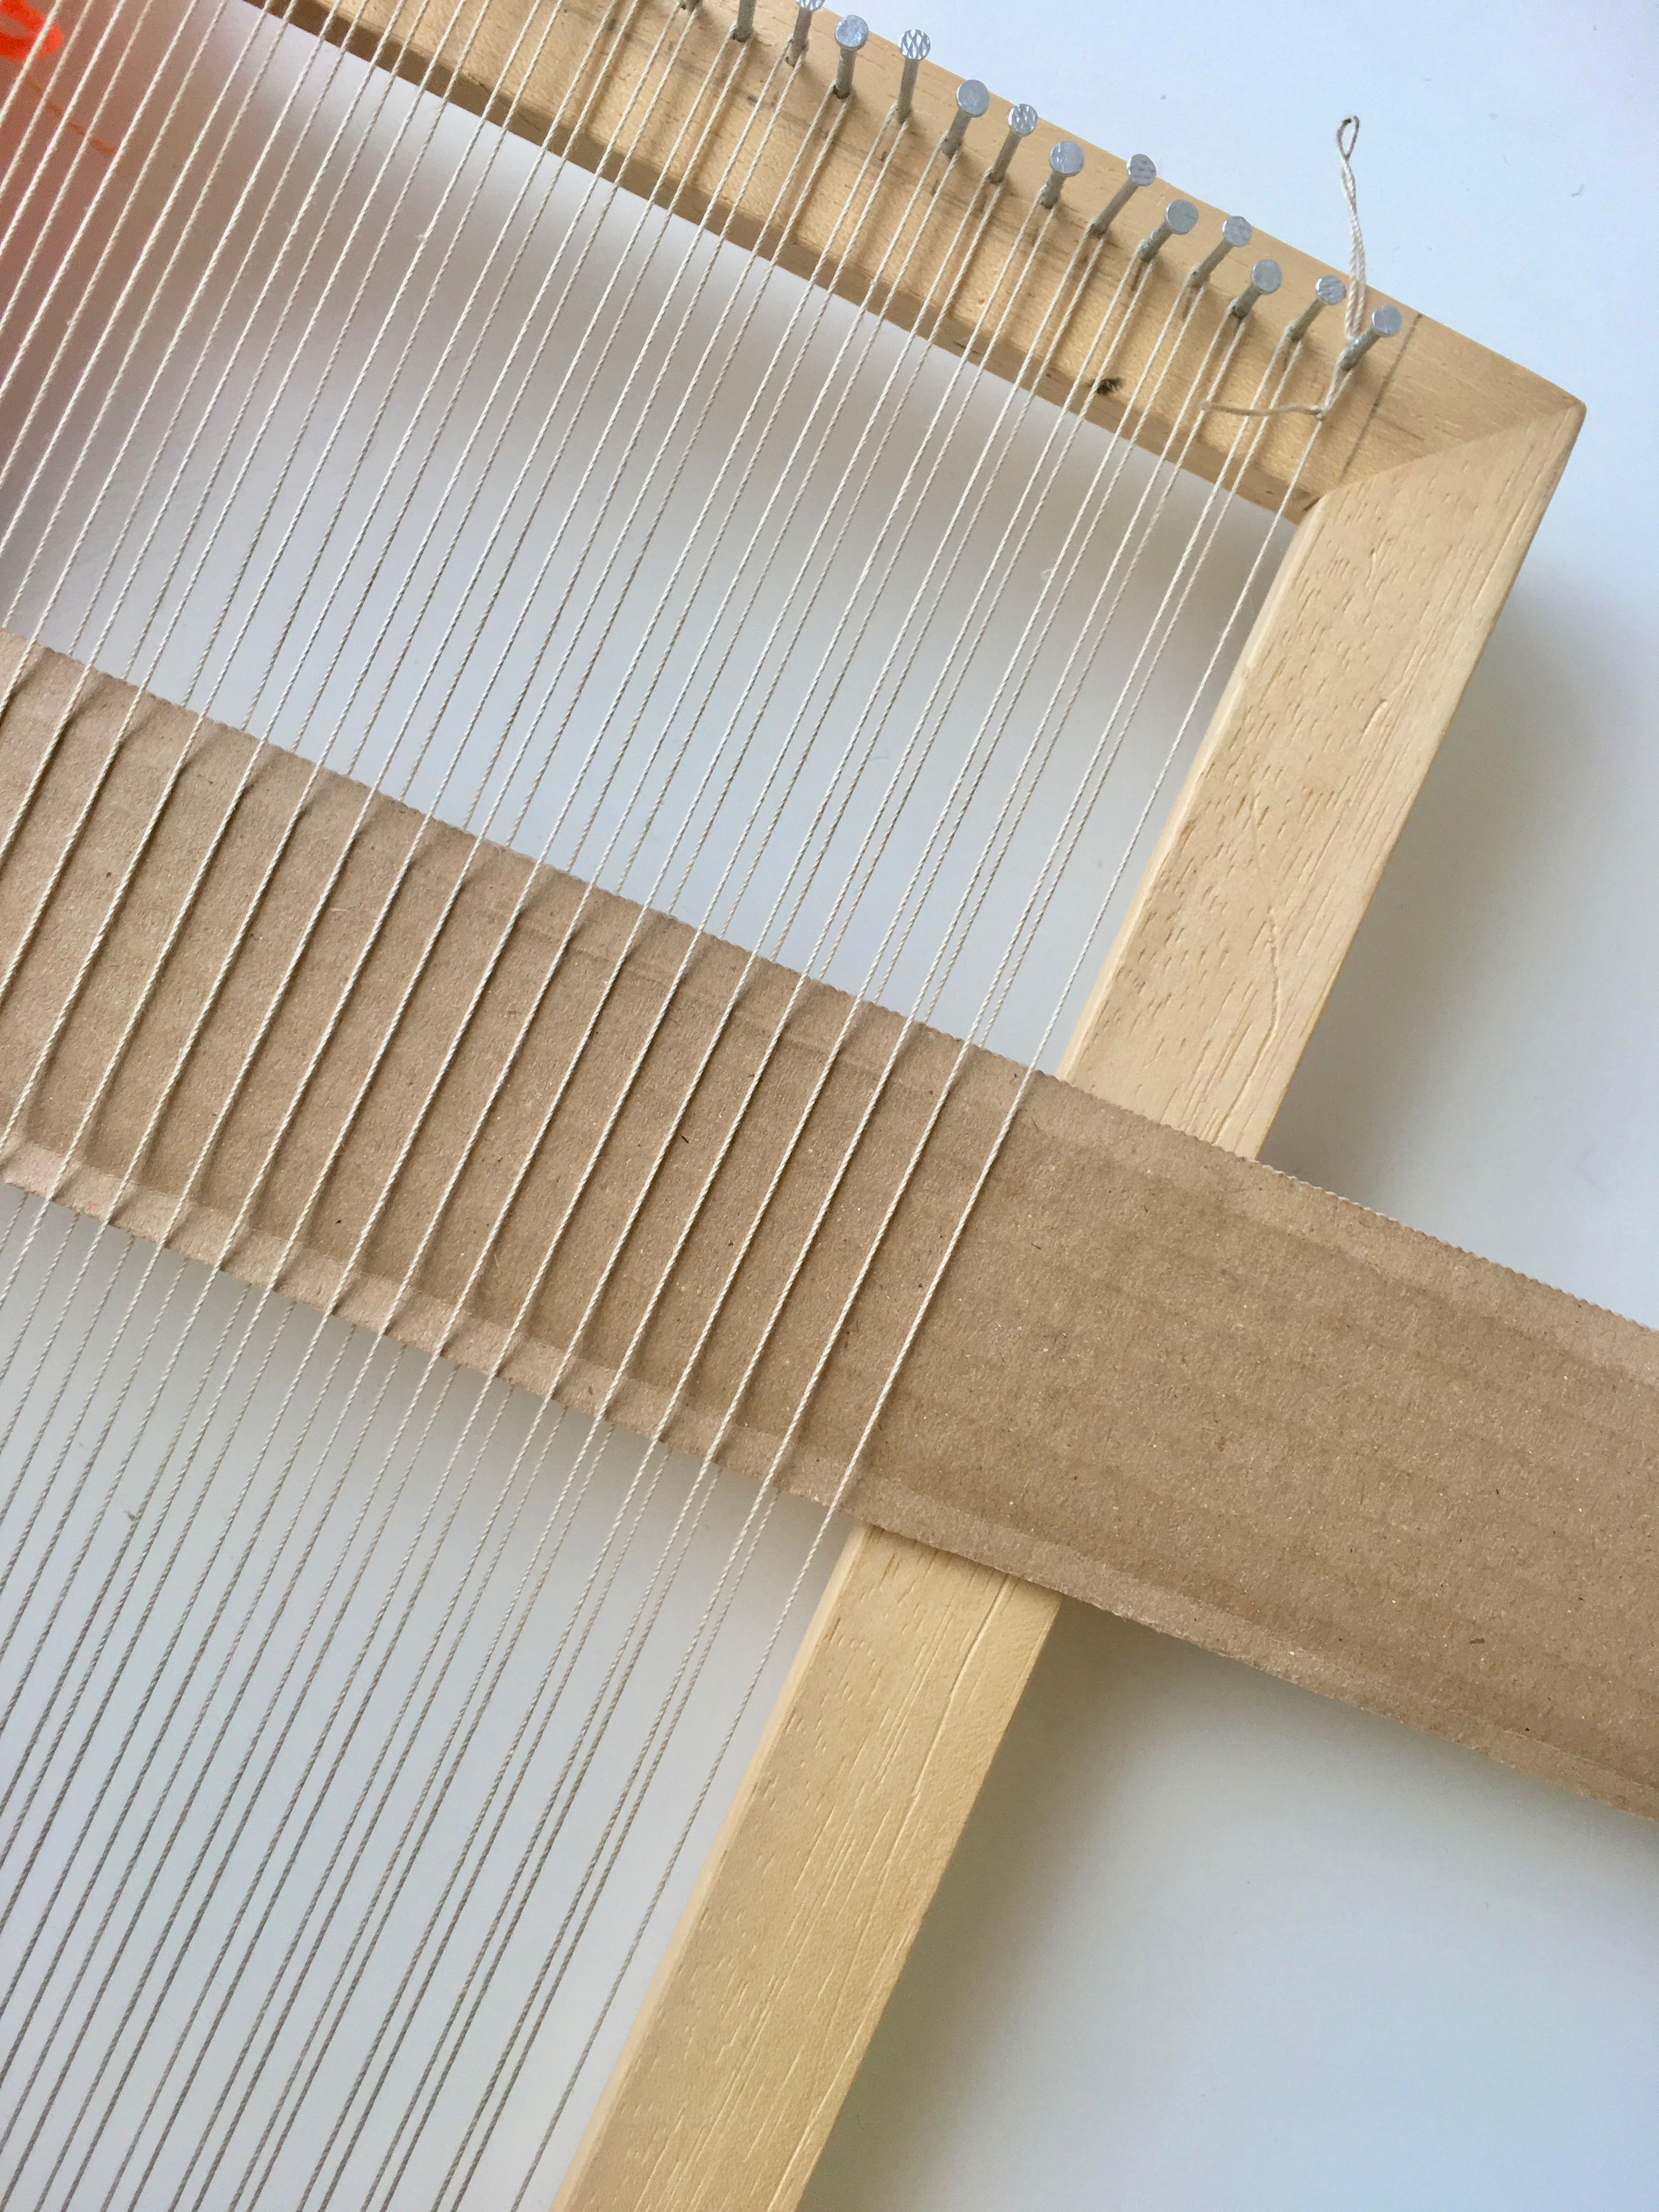 10 Mistakes New Frame Loom Weavers Make: uneven edges, loose warp tension and more! - Fibers and Design